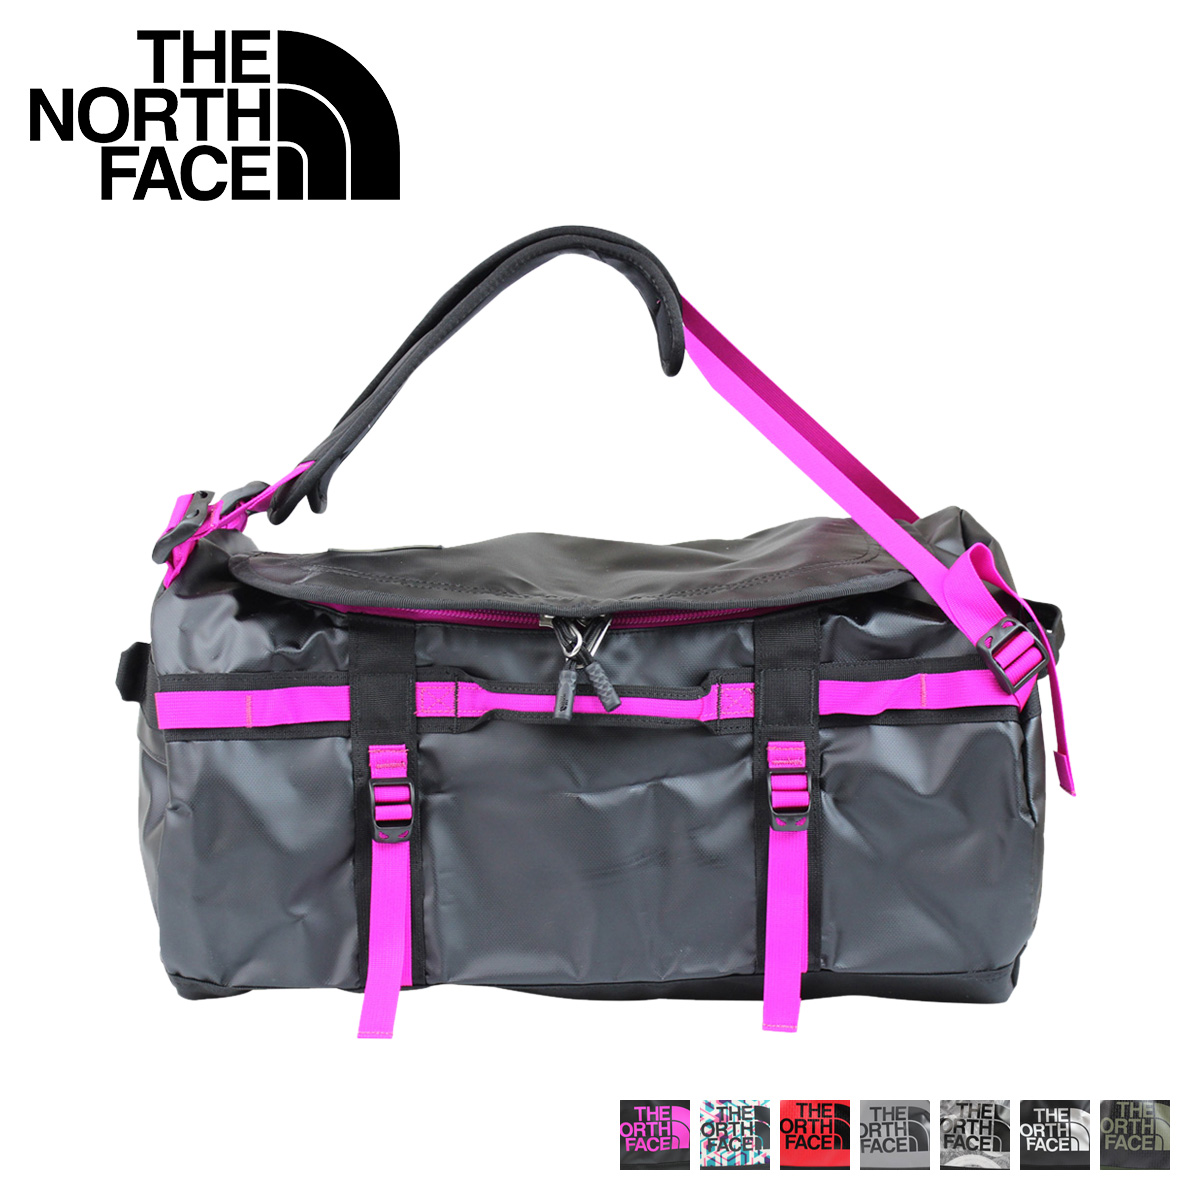 Days Stock Raquo North Face The Mens Womens Duffle Bags Bag Cww3 50 L 7 Color Base Camp Duffel S 10 New In Rakuten Global Market